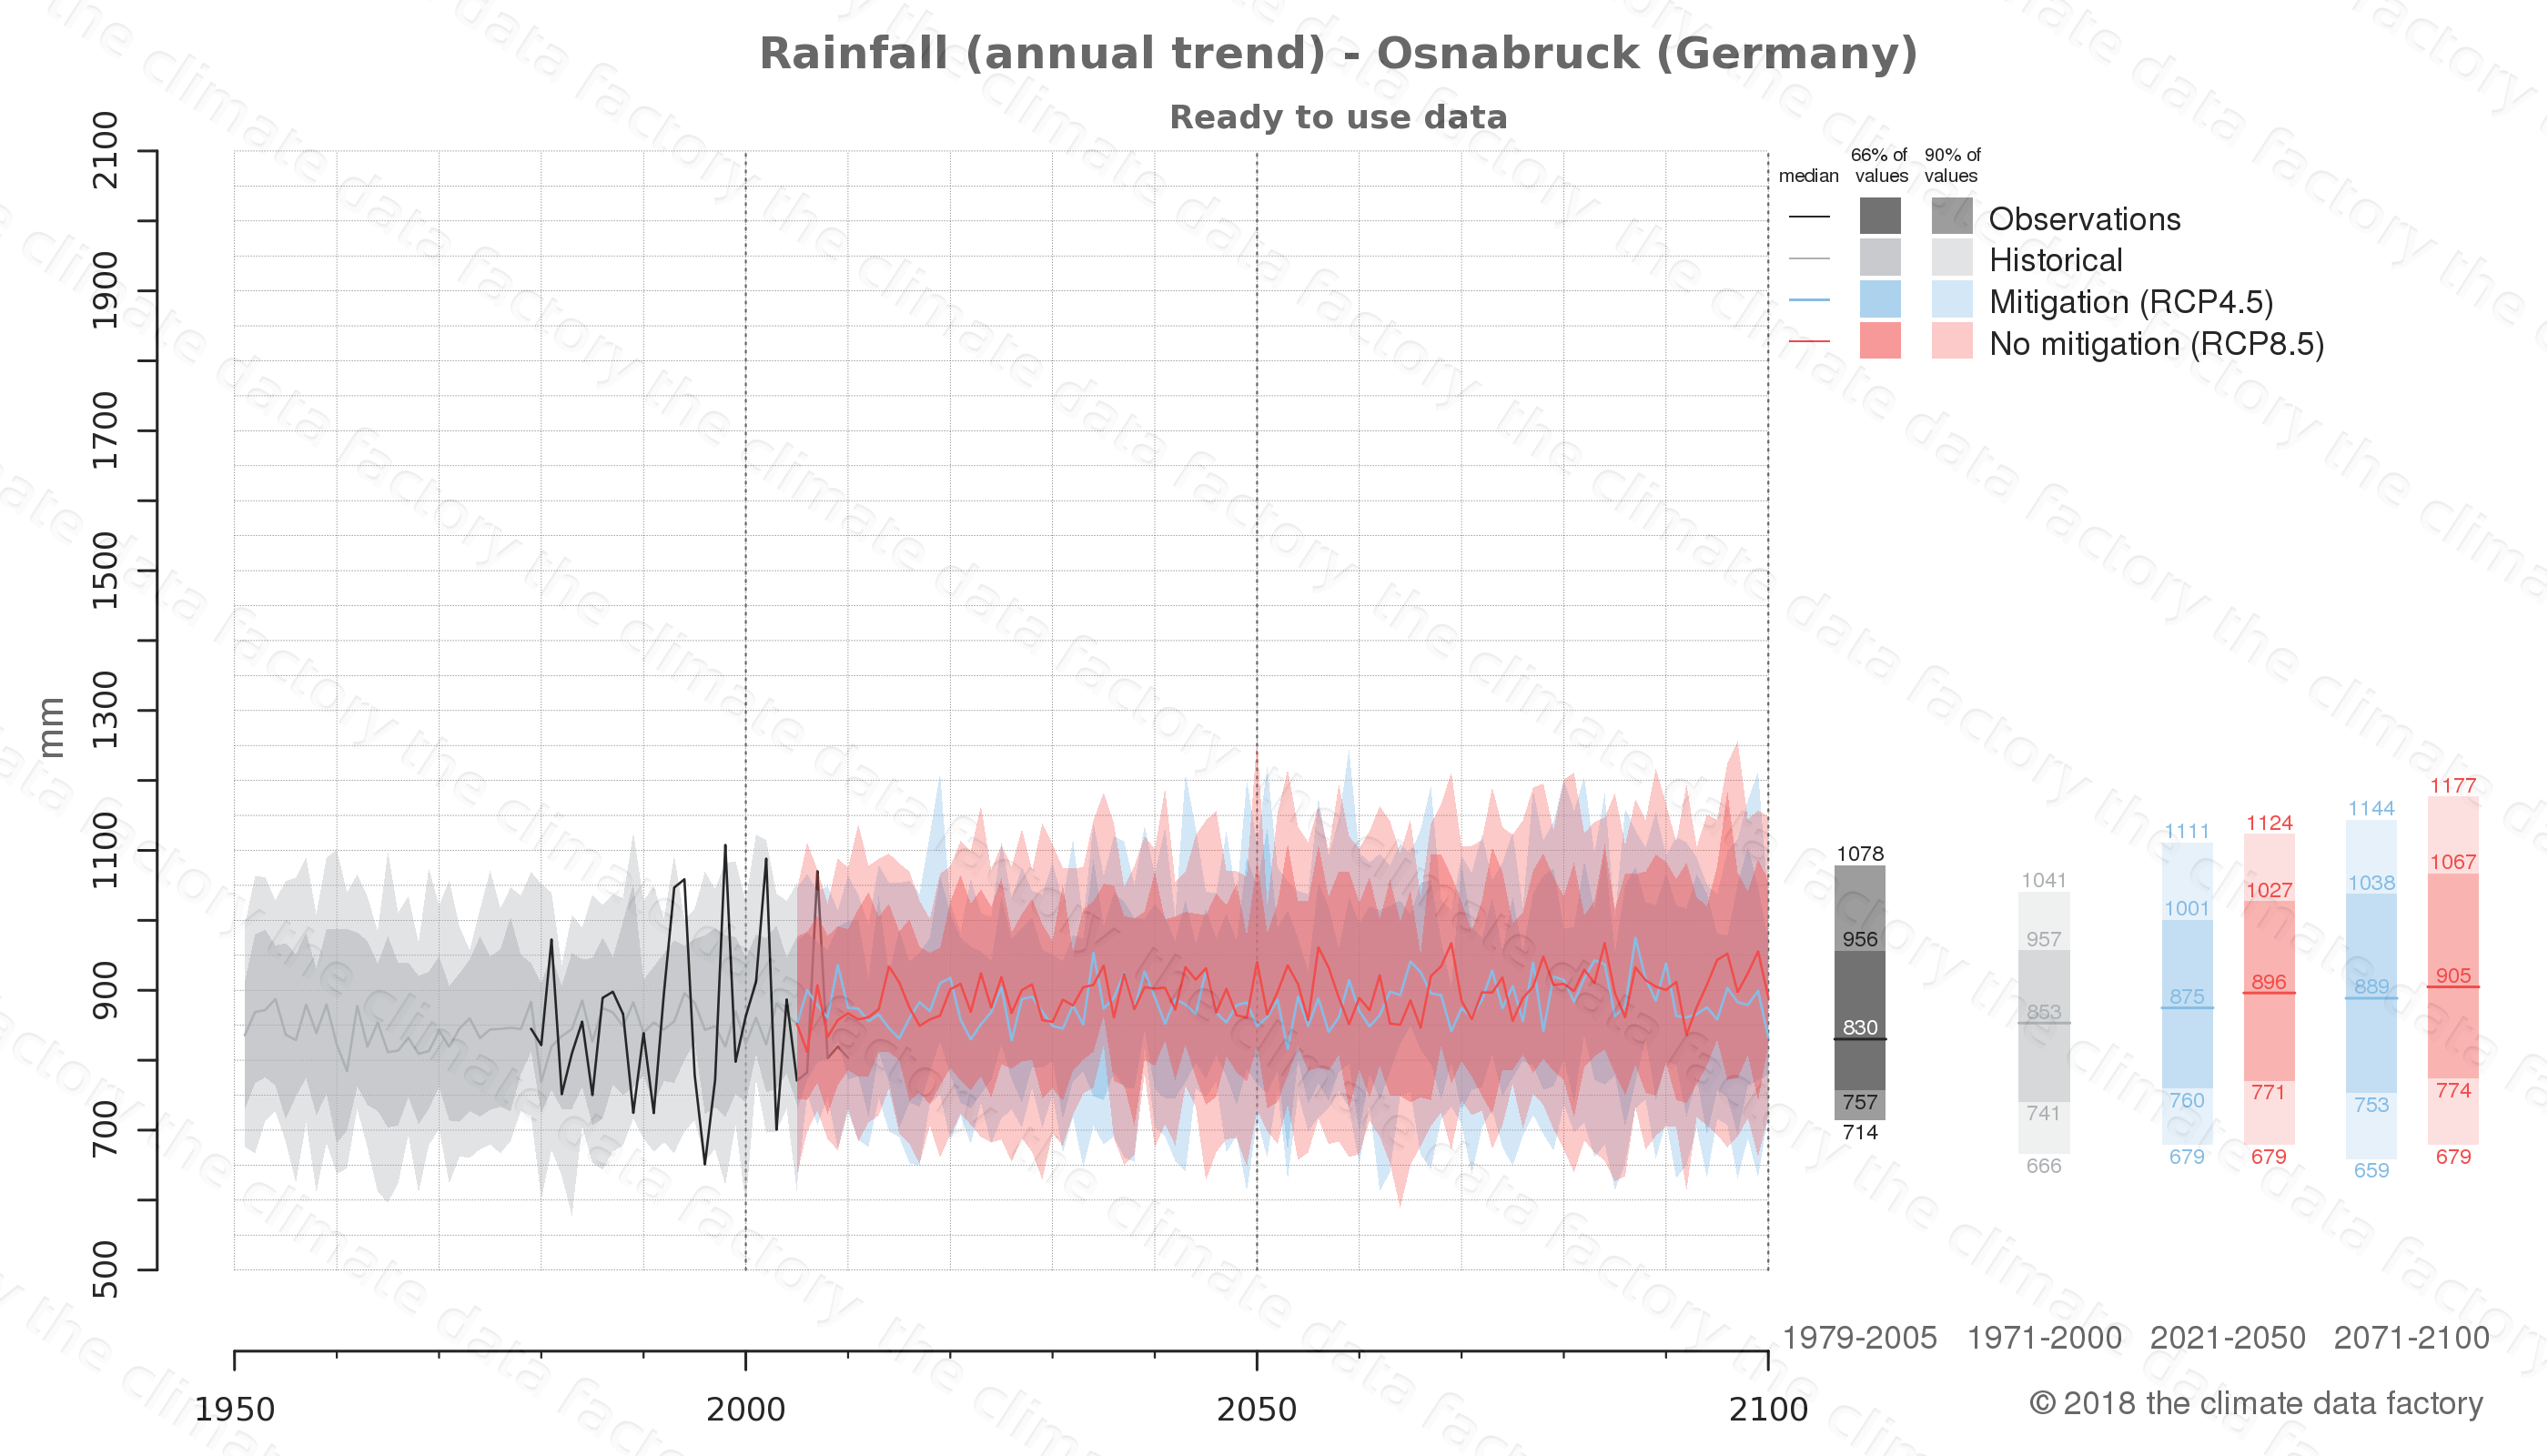 climate change data policy adaptation climate graph city data rainfall osnabruck germany